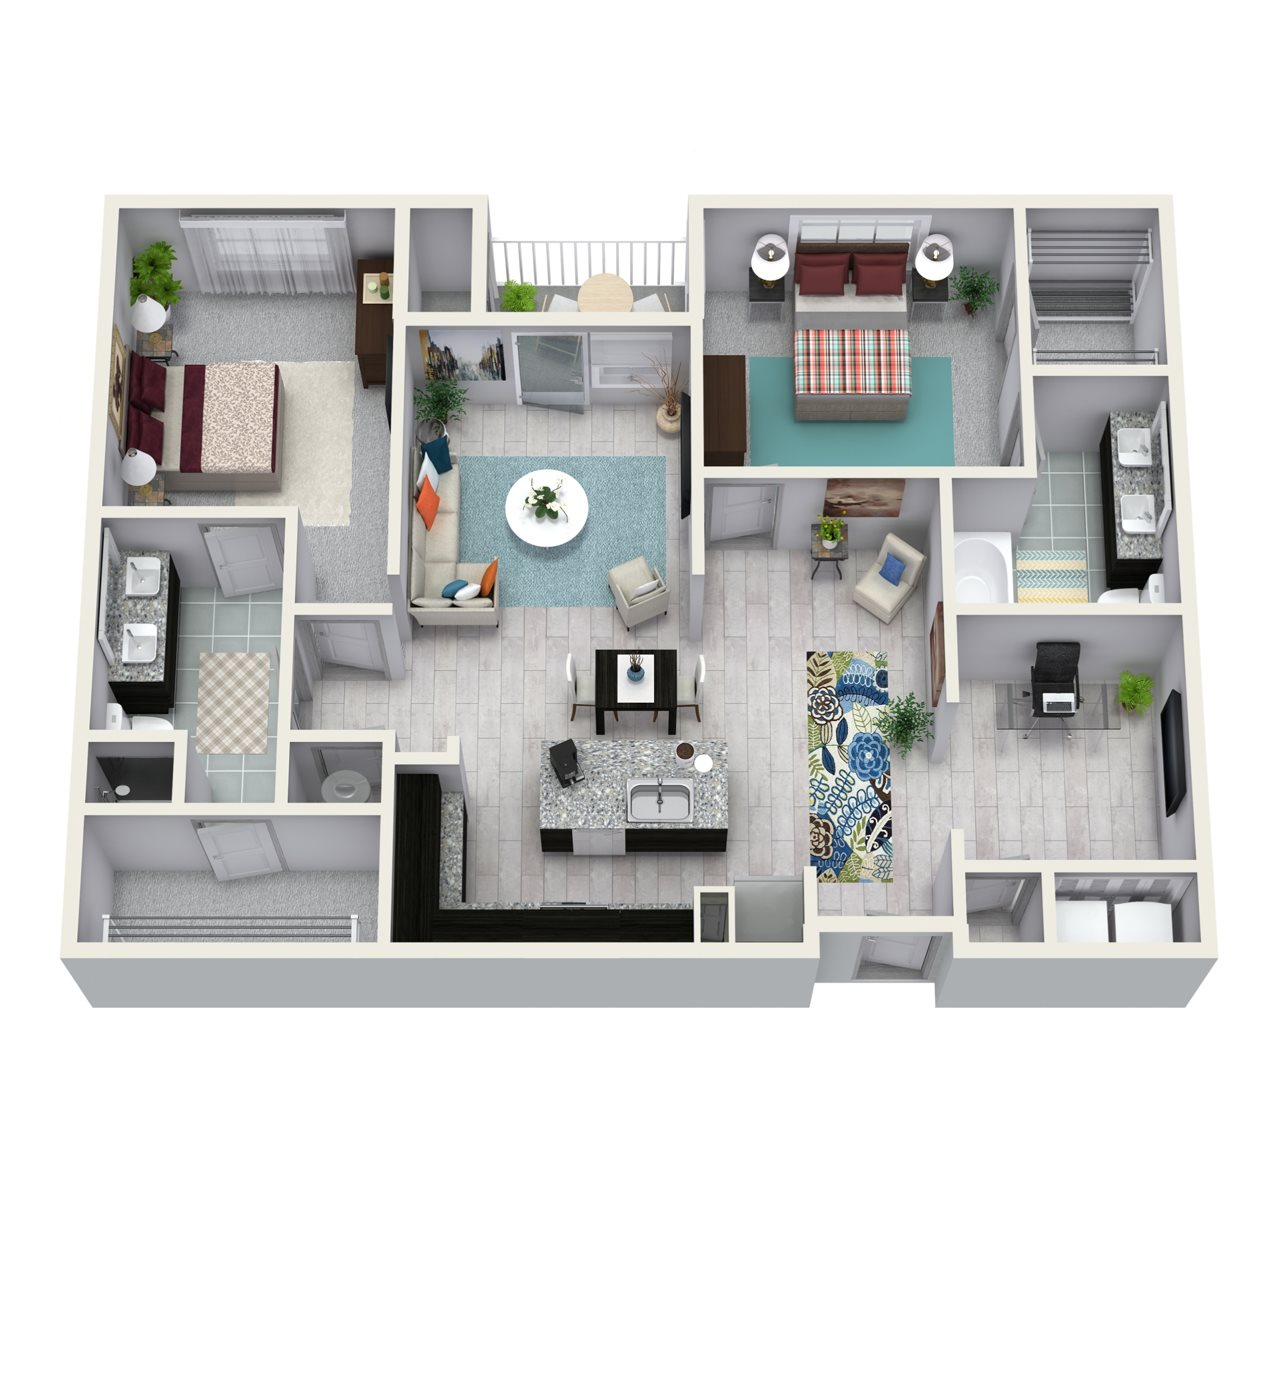 2 Bedroom 2 Bath 1339 sqft B4 Floor Plan 11